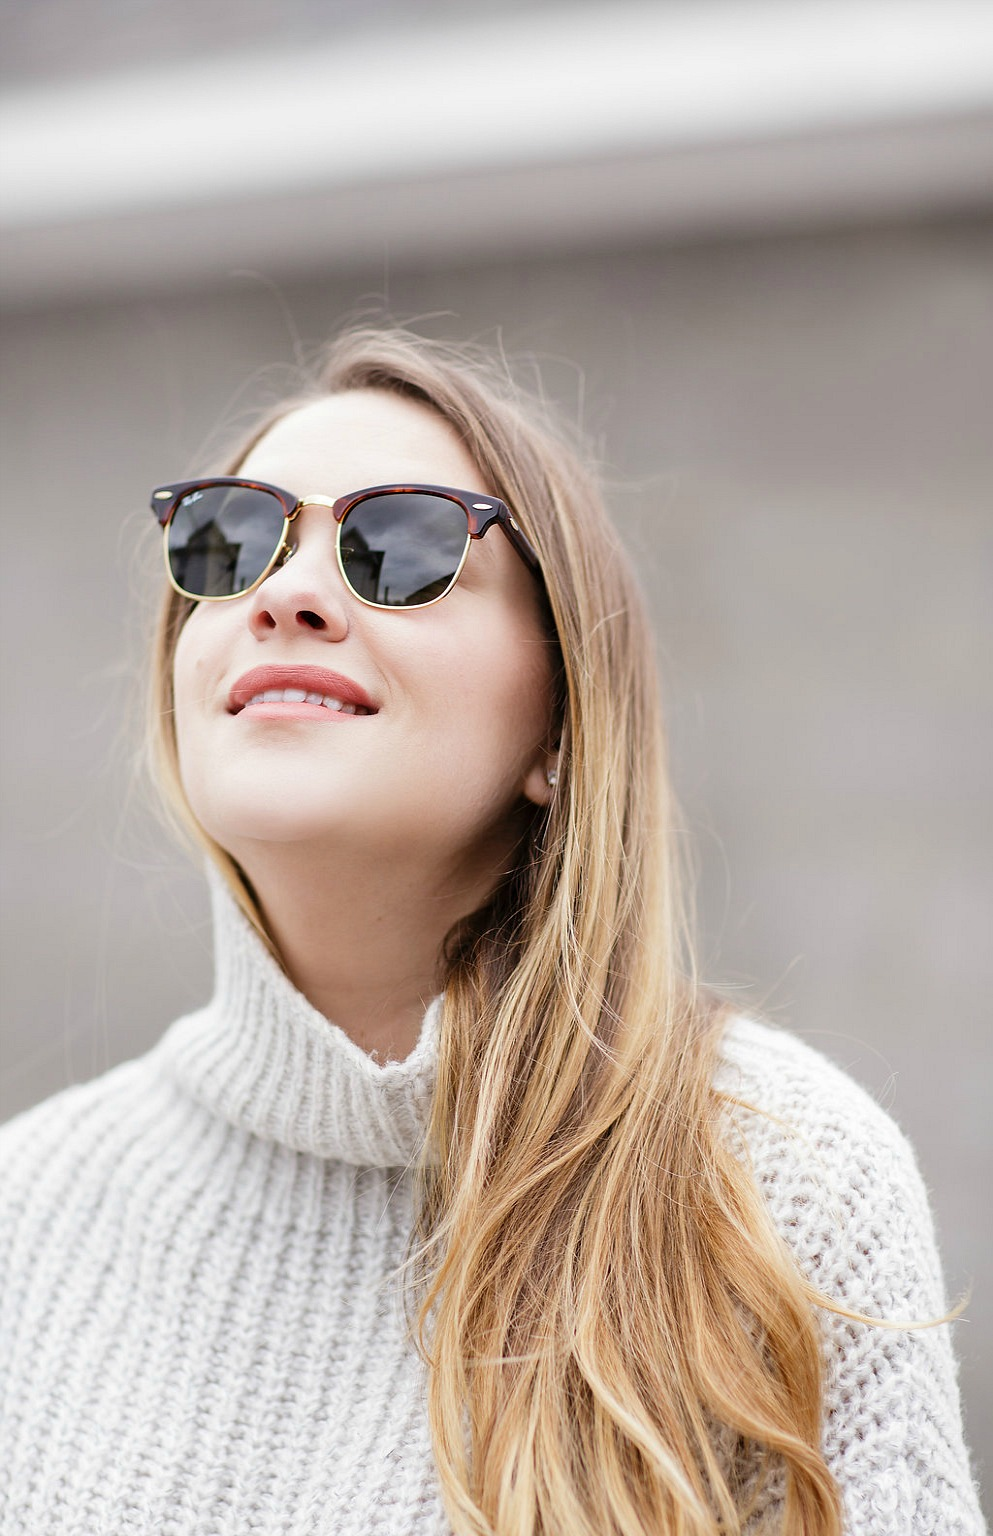 07989c004b0 ray-ban-clubmaster-sunglasses-rose-city-style-guide-fall-fashion ...